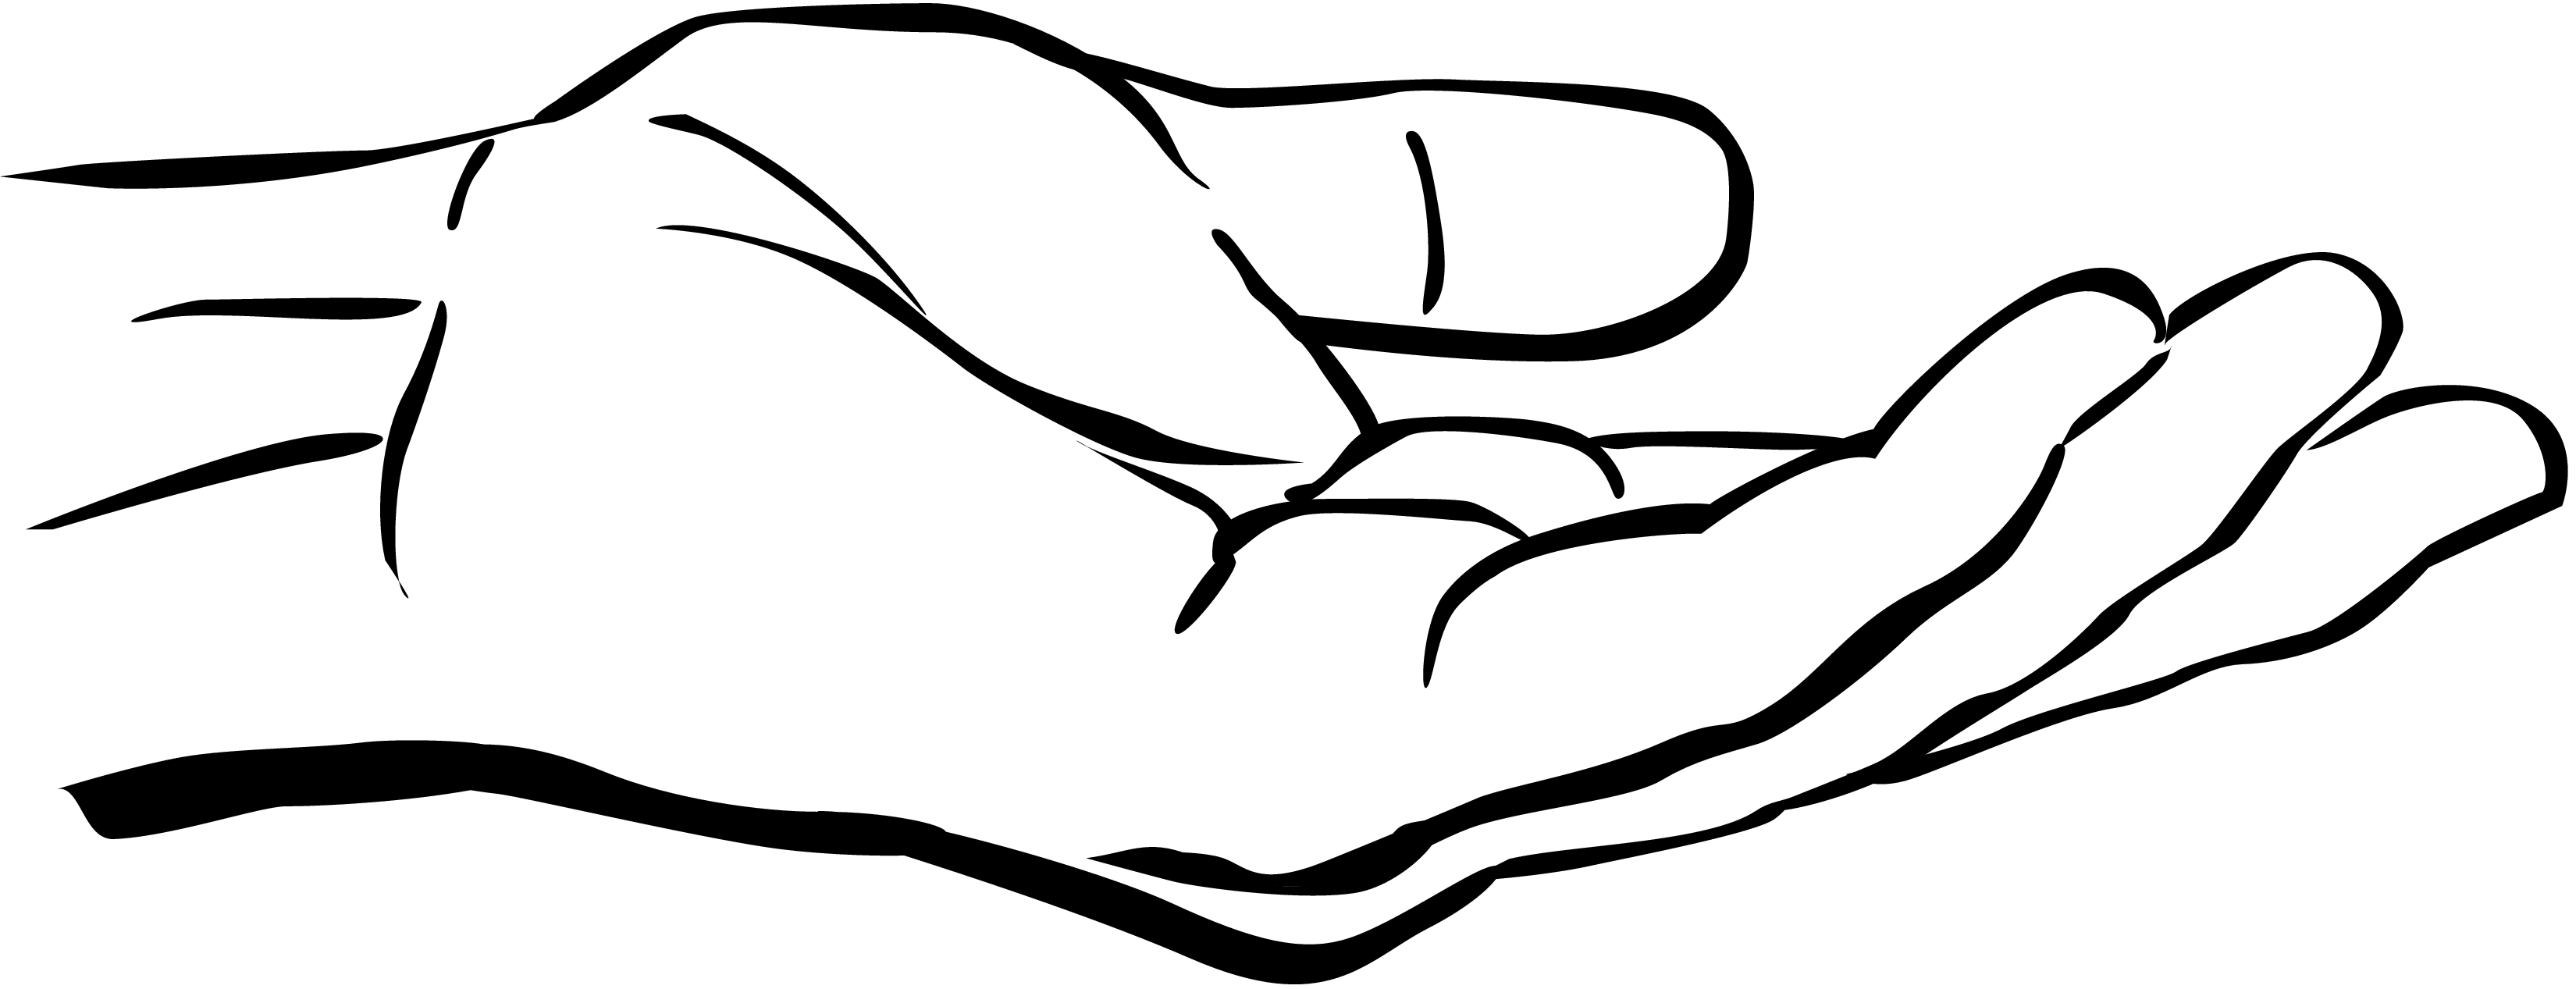 Hand Outline Template Printable Free Download Best Hand Outline